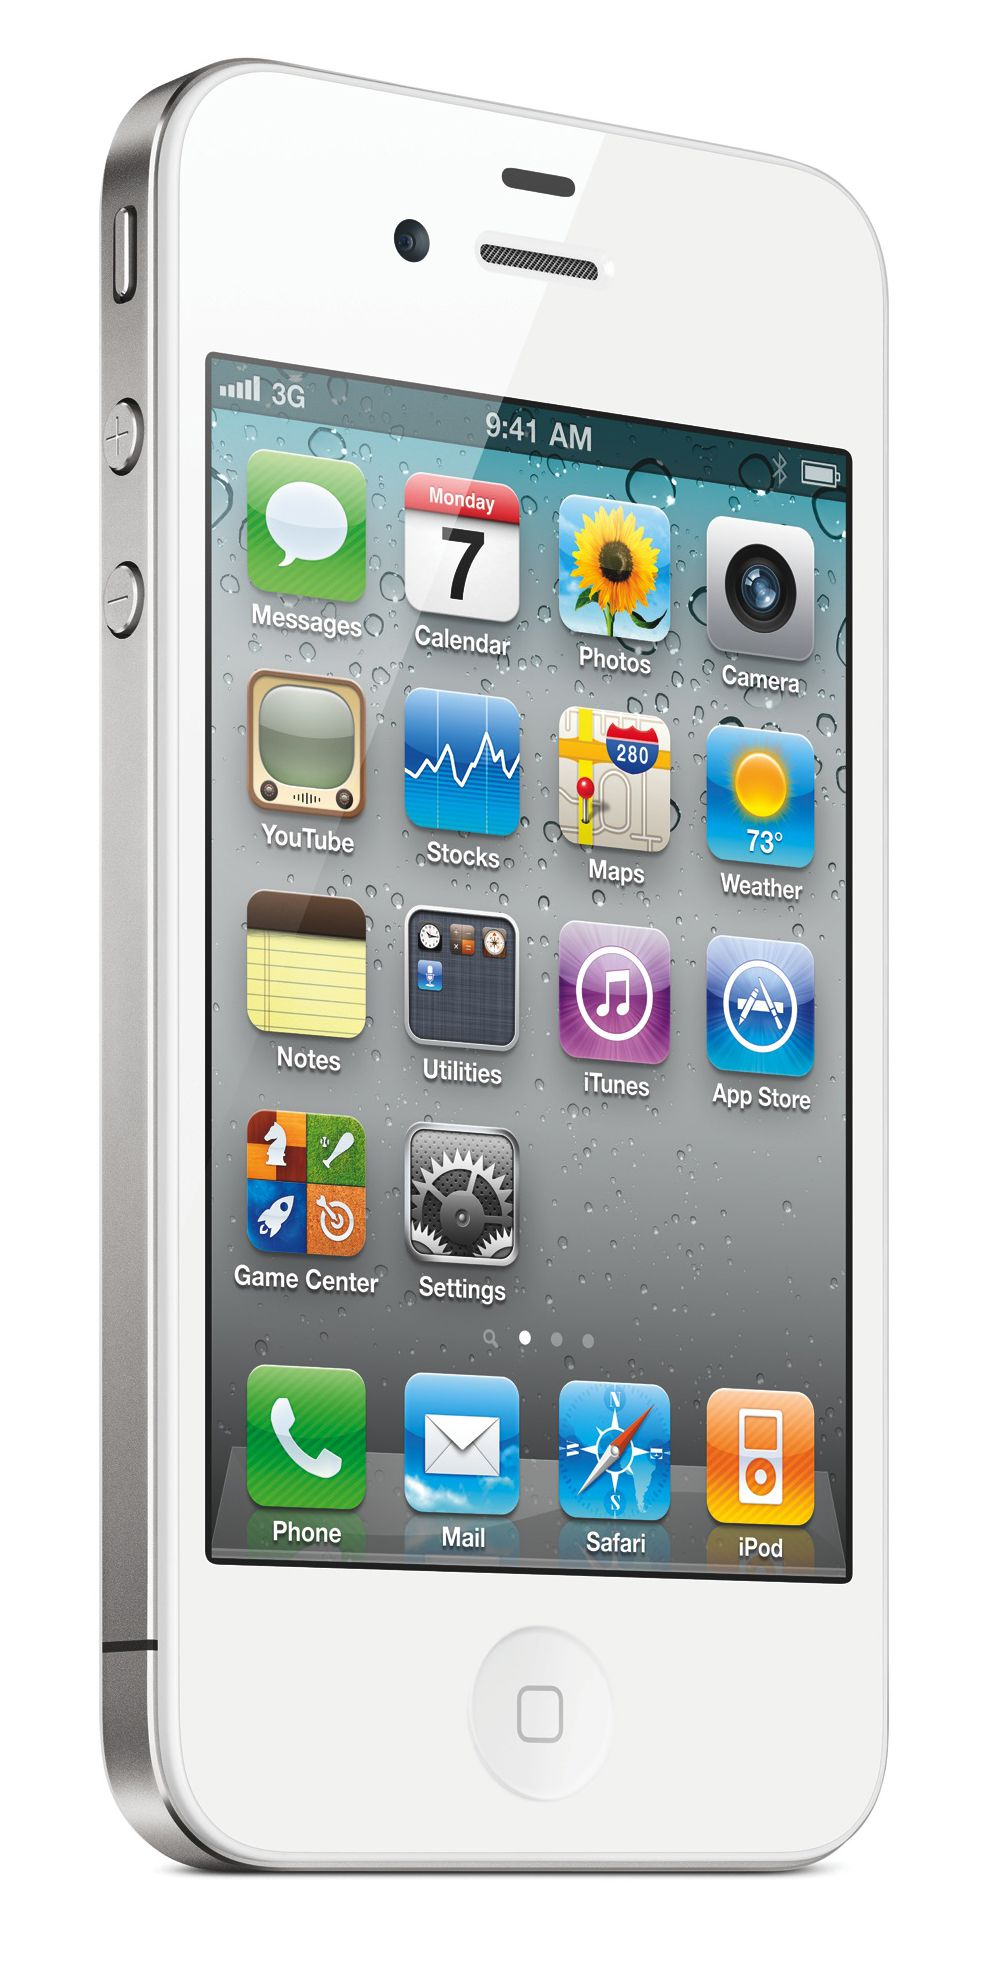 unlocked iphone 4 frequently asked questions. Black Bedroom Furniture Sets. Home Design Ideas